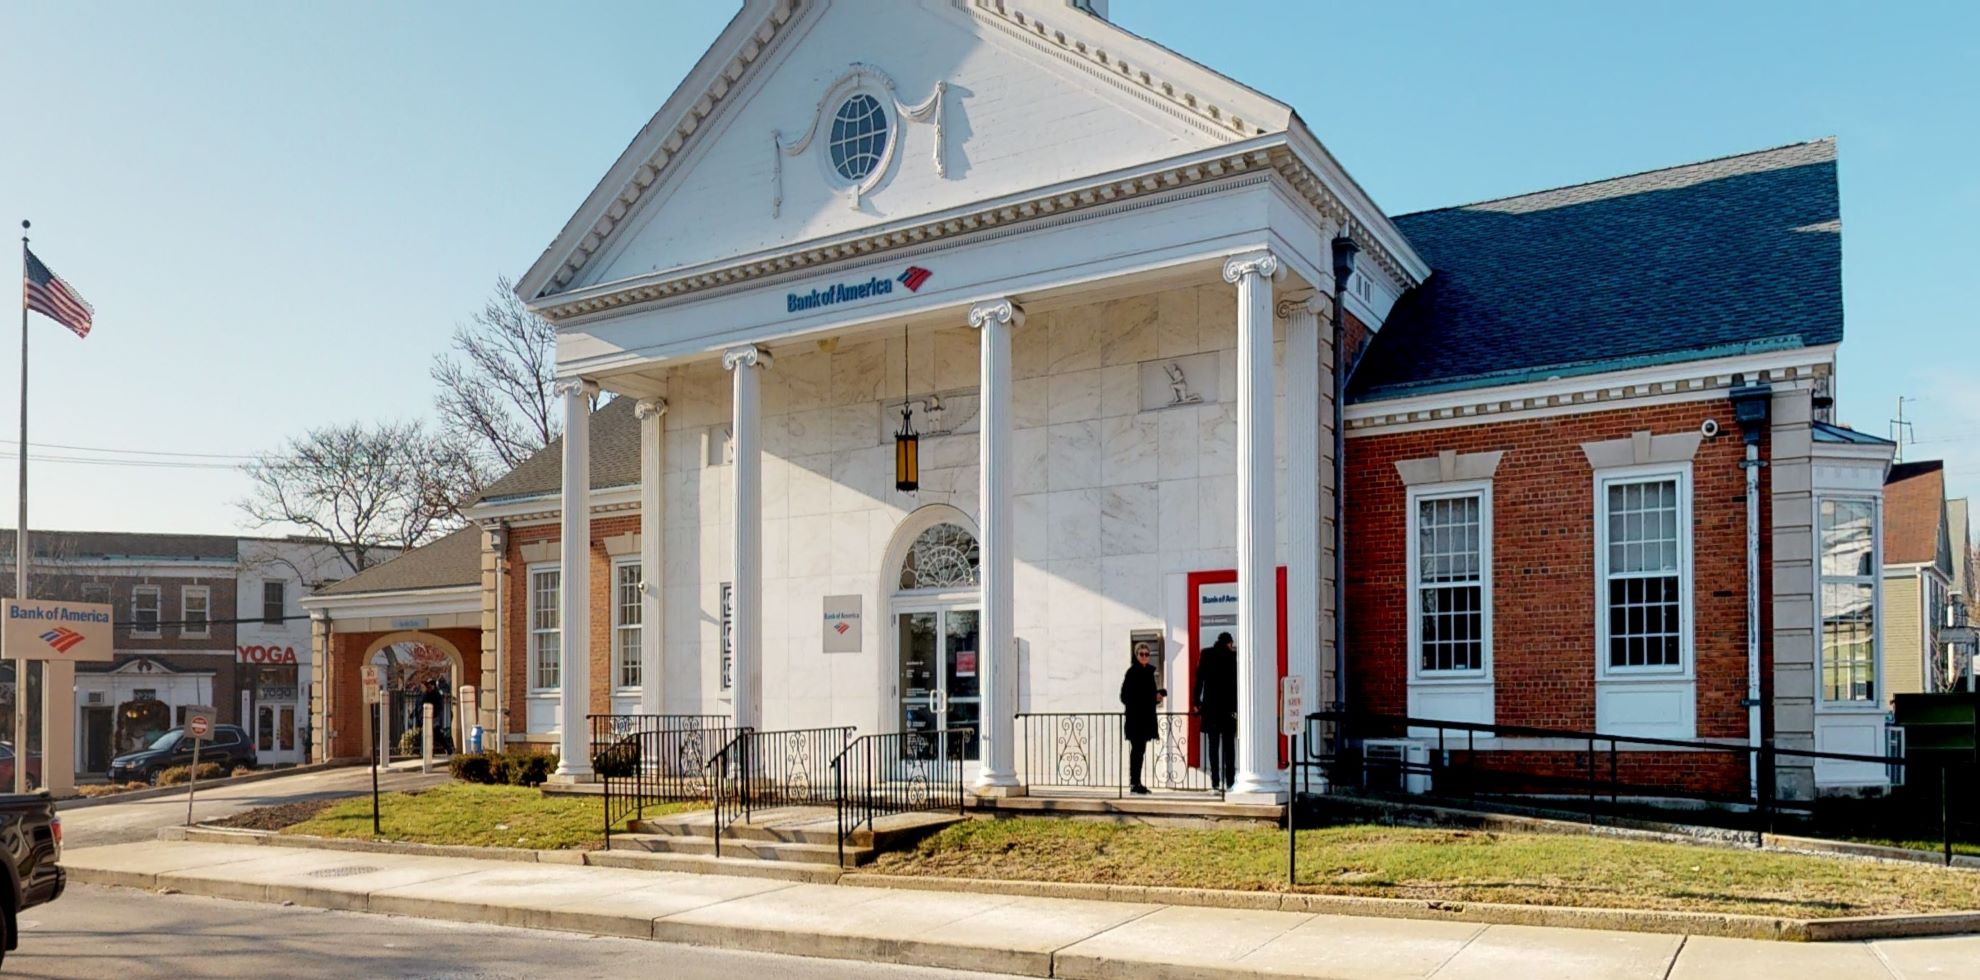 Bank of America financial center with drive-thru ATM | 1366 Post Rd, Fairfield, CT 06824